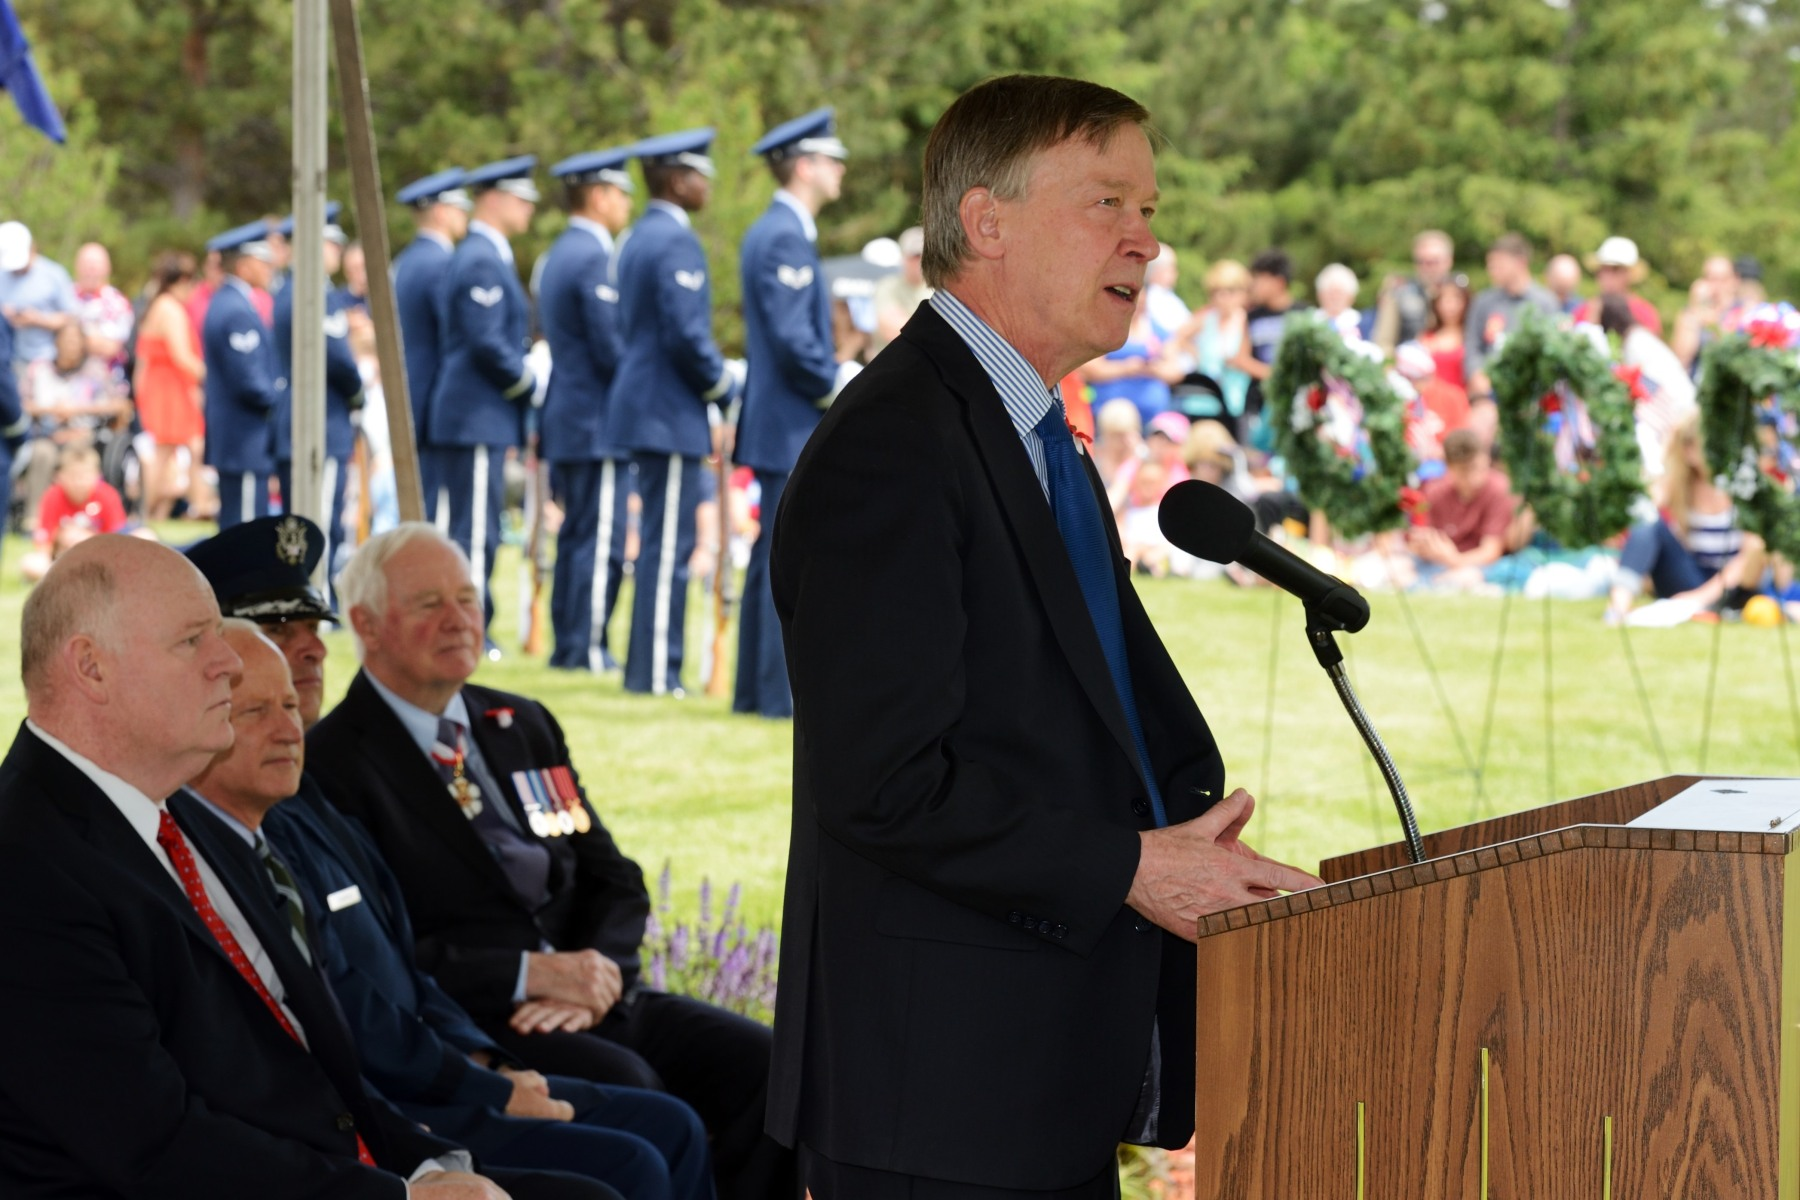 The Governor of Colorado delivered a speech on this occasion.